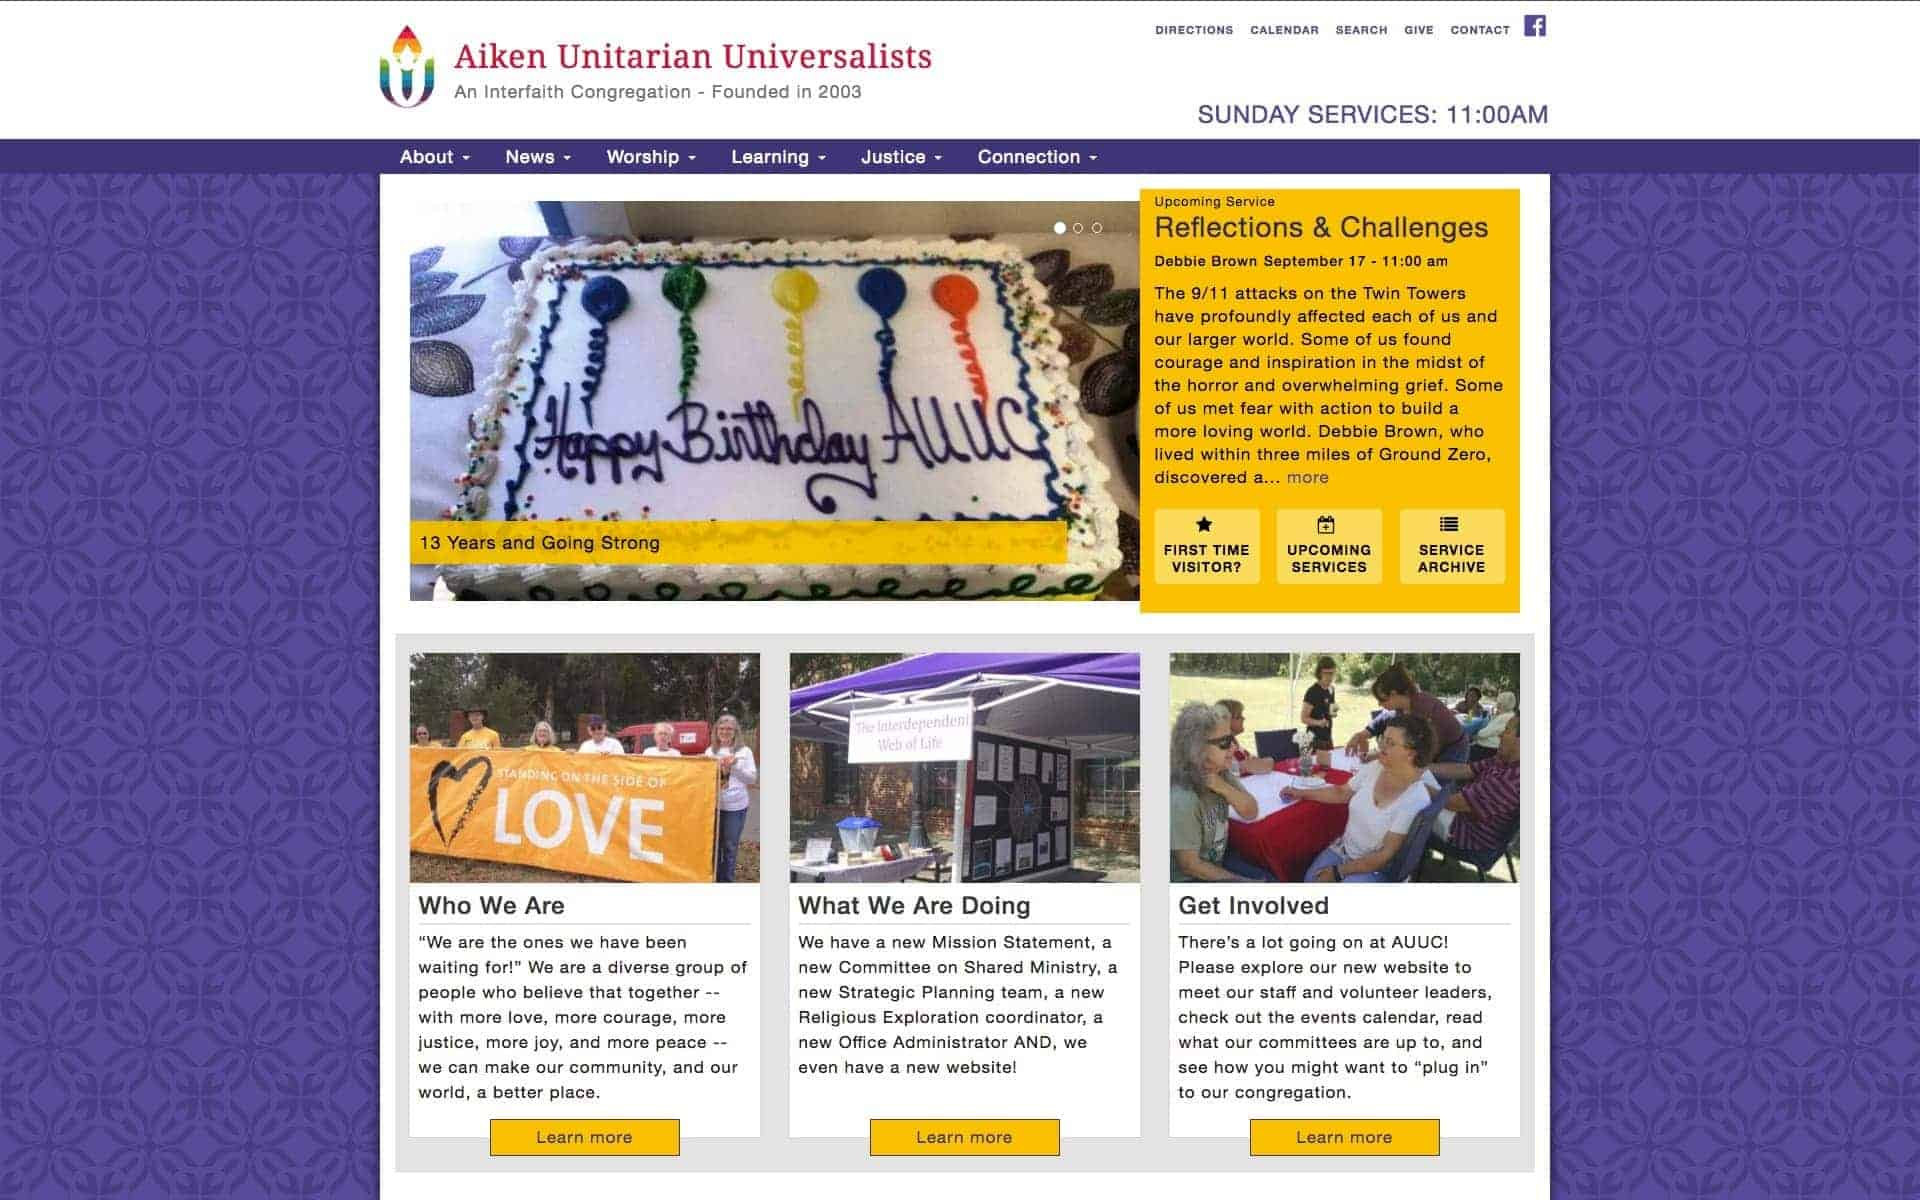 screenshot of website on iMac - Aiken Unitarian Universalists